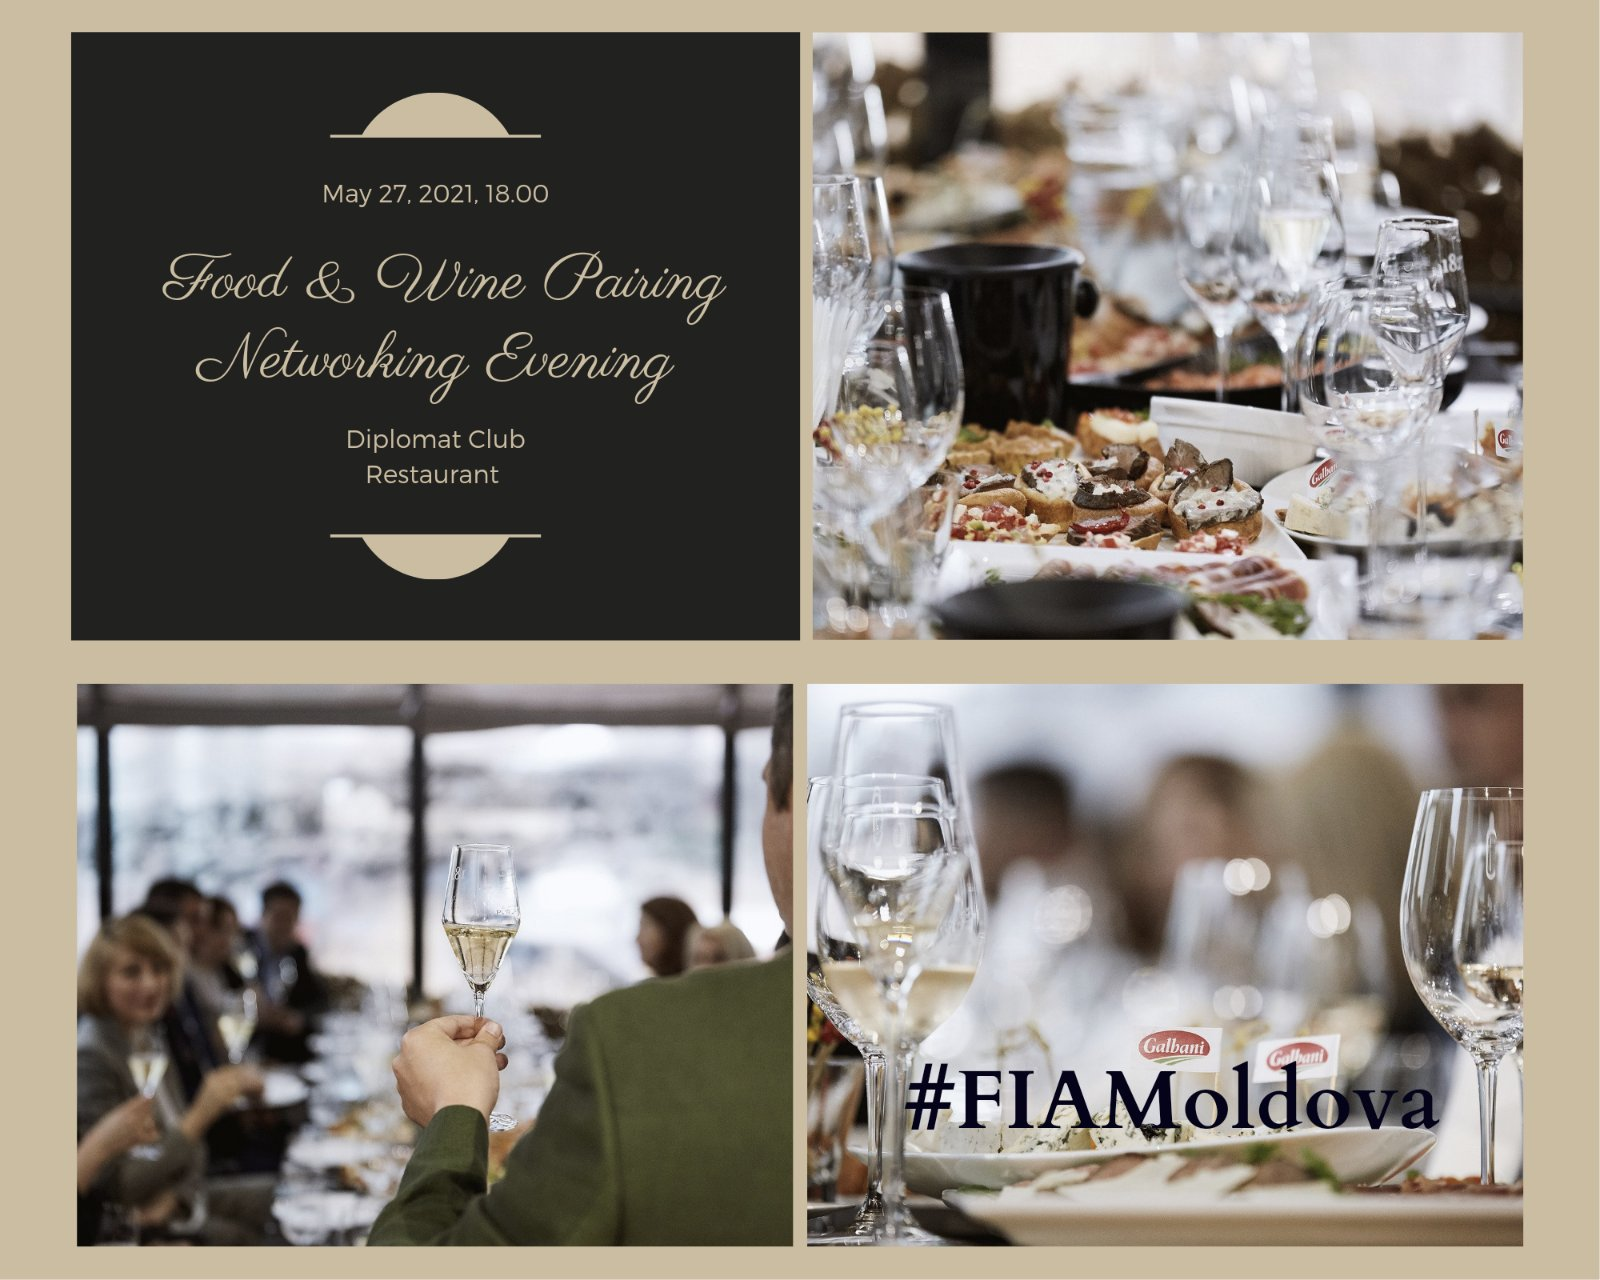 Food & Wine Pairing Networking Event